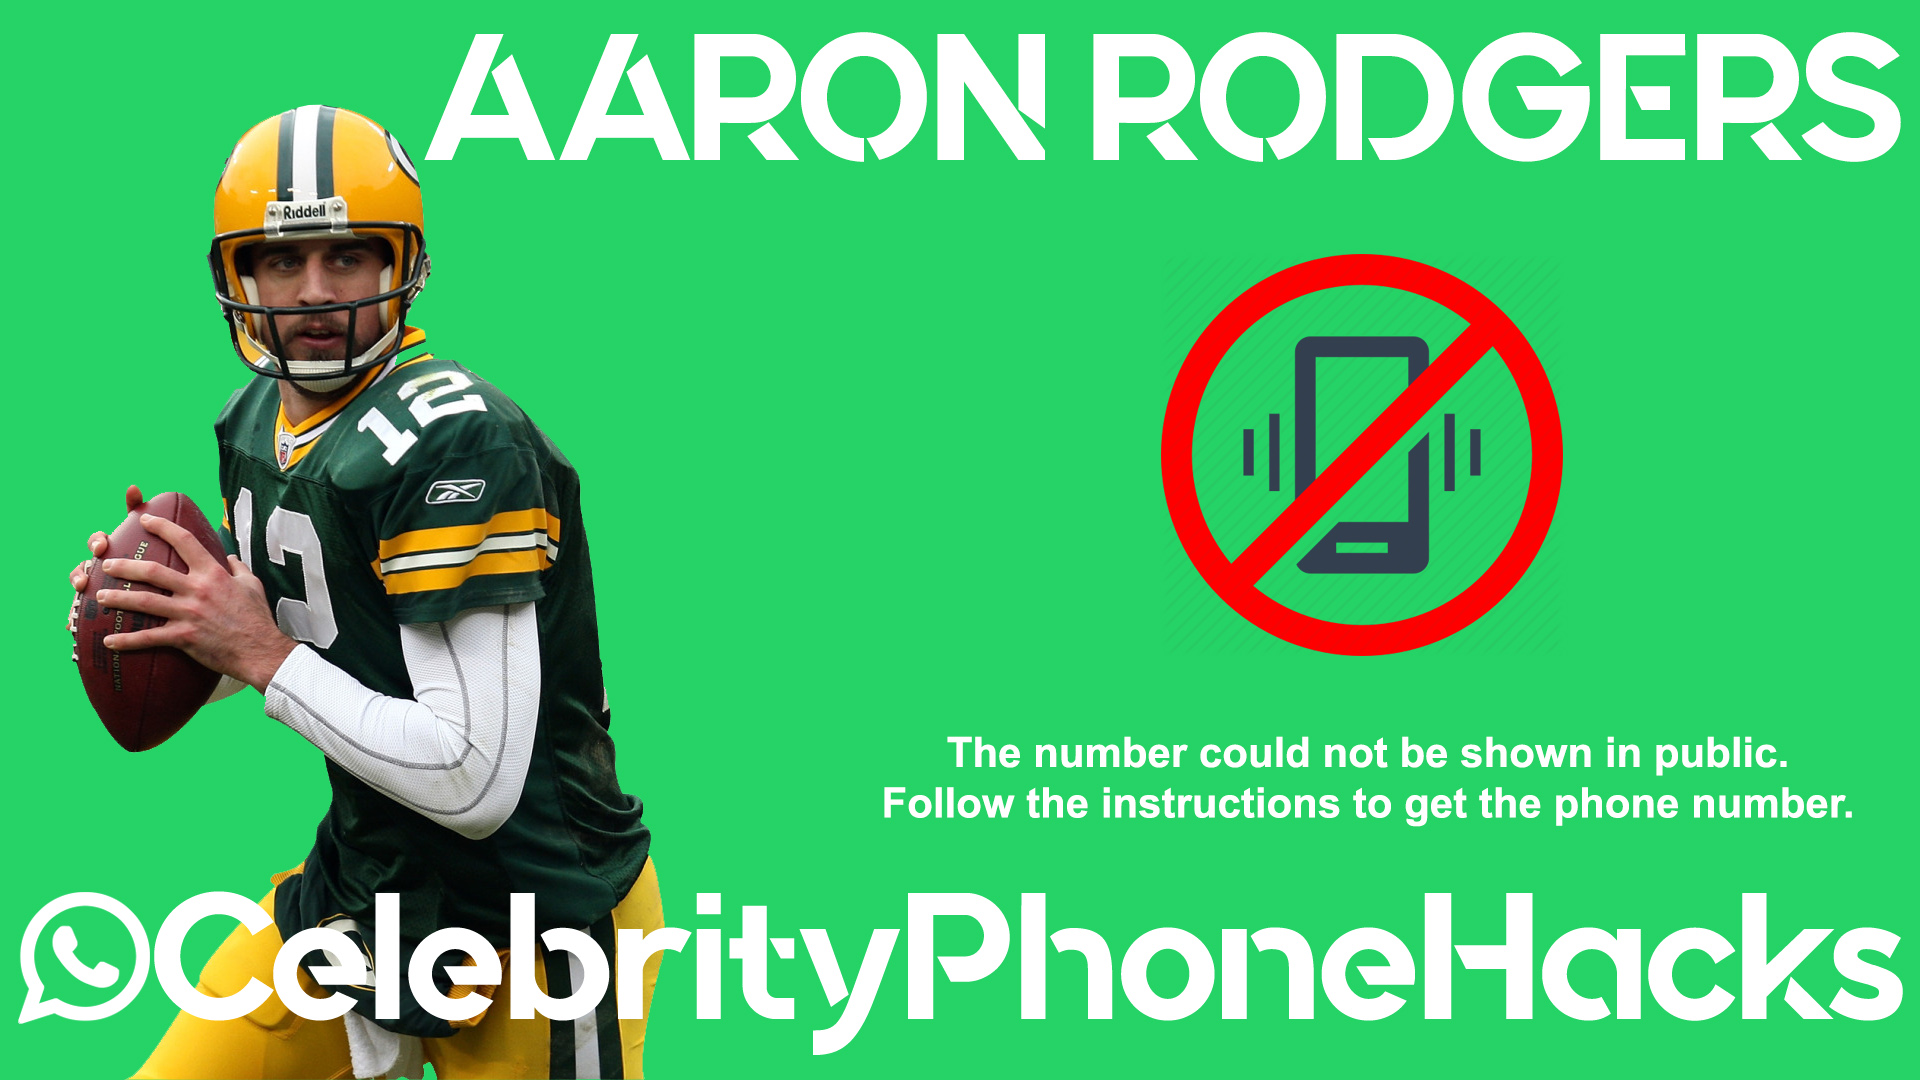 Aaron Rodgers real phone number 2019 whatsapp hacked leaked